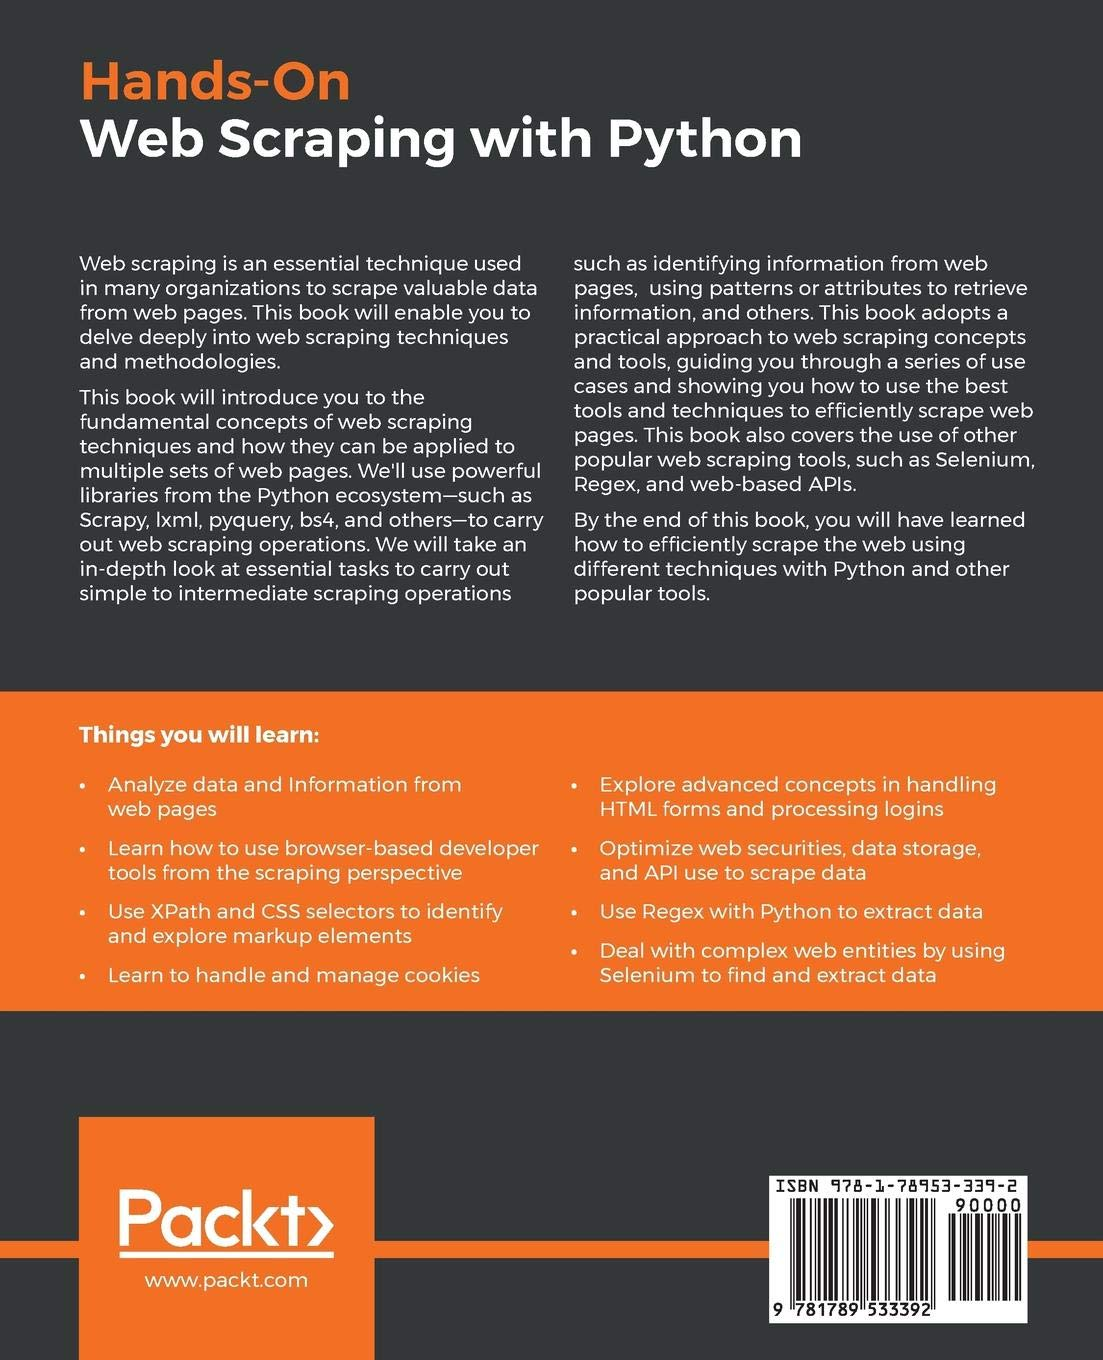 Buy Hands-On Web Scraping with Python: Perform advanced scraping